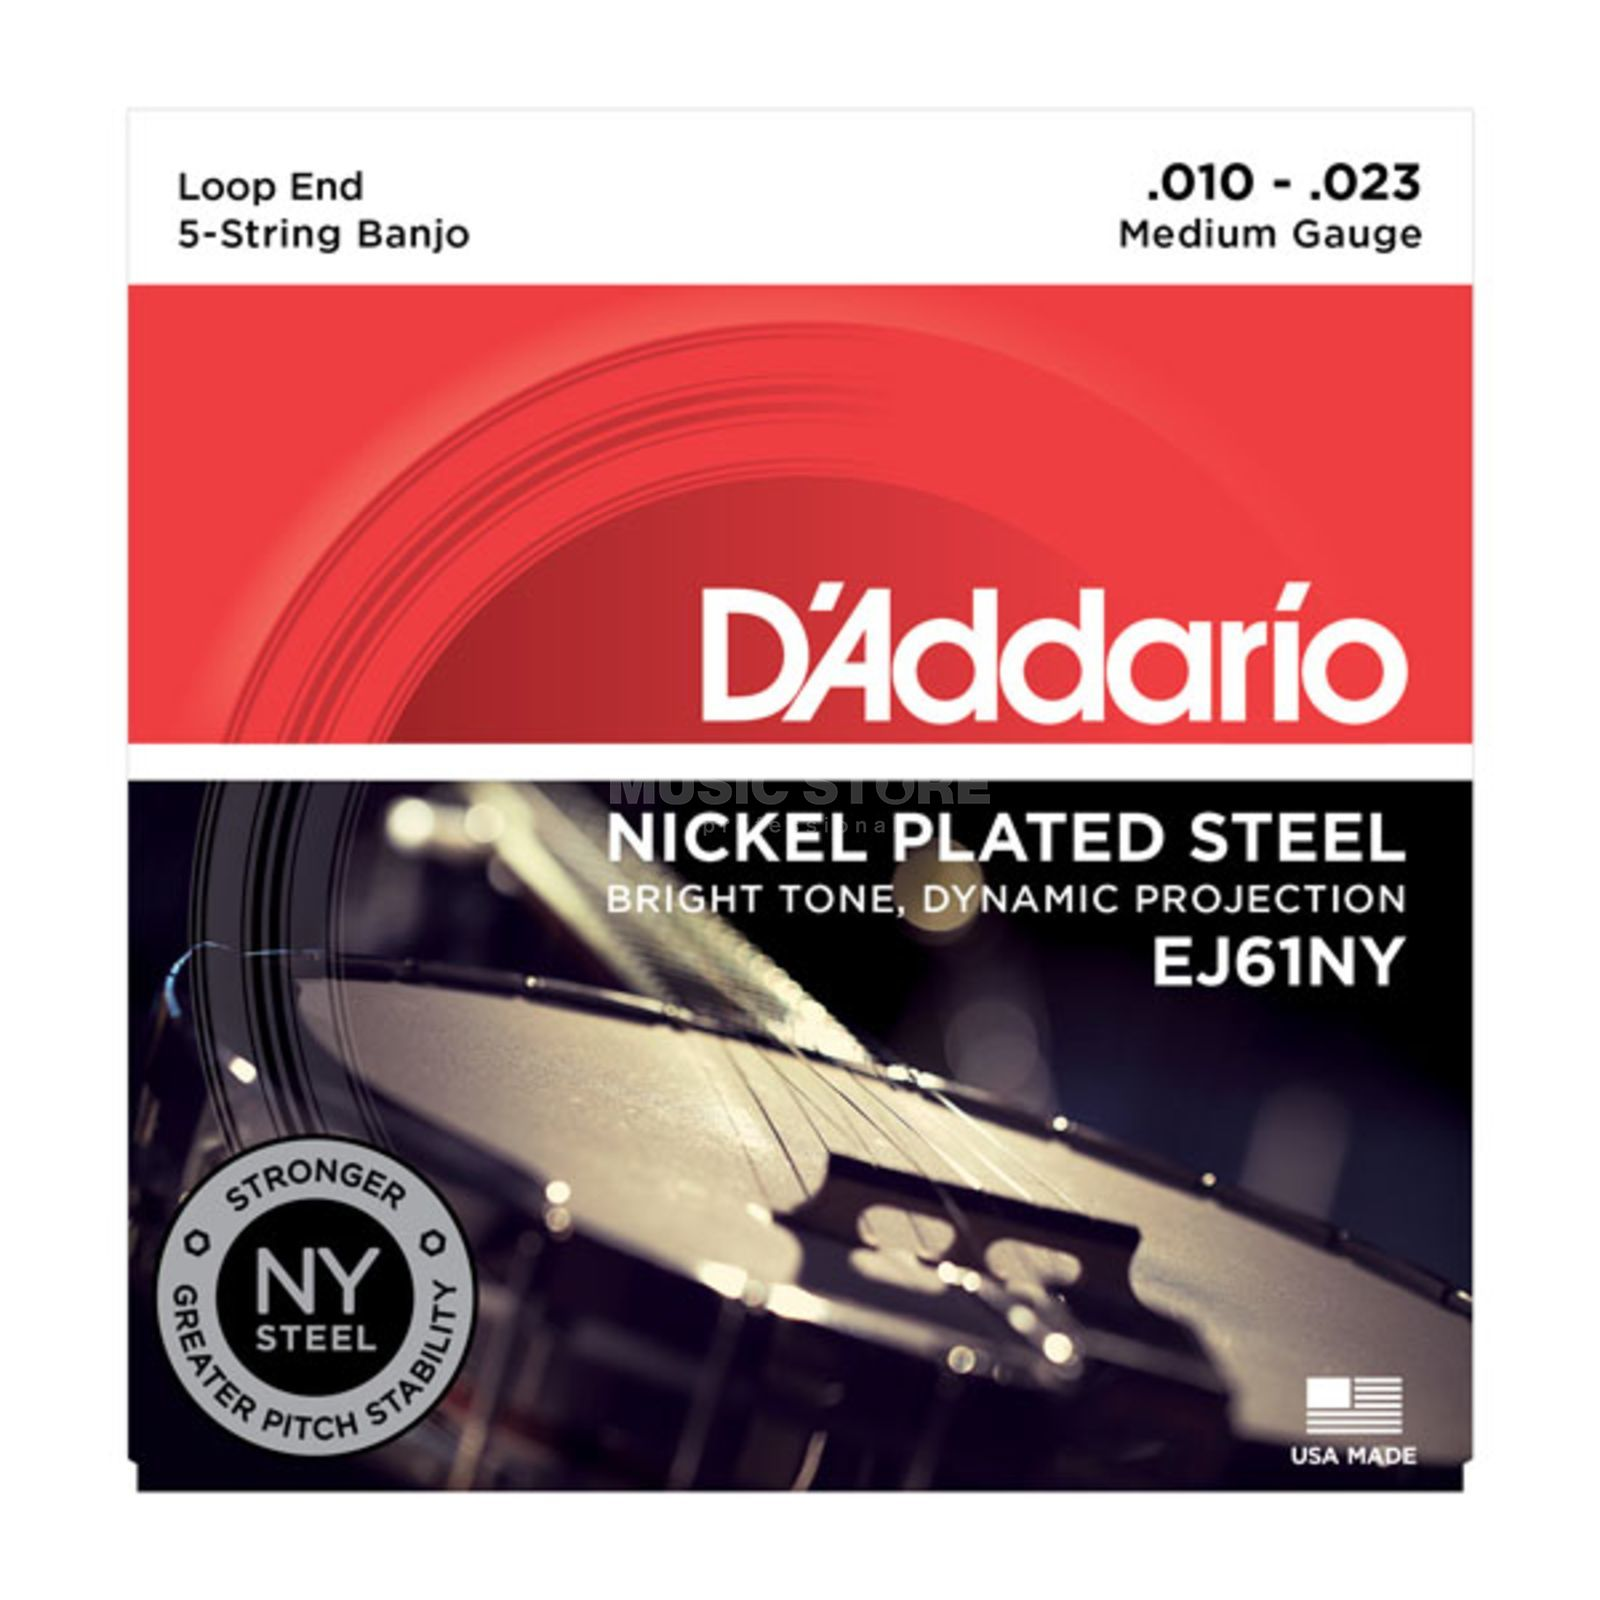 D'Addario Banjo Strings EJ61NY 10-23 5-String Nickel Loop End Produktbillede